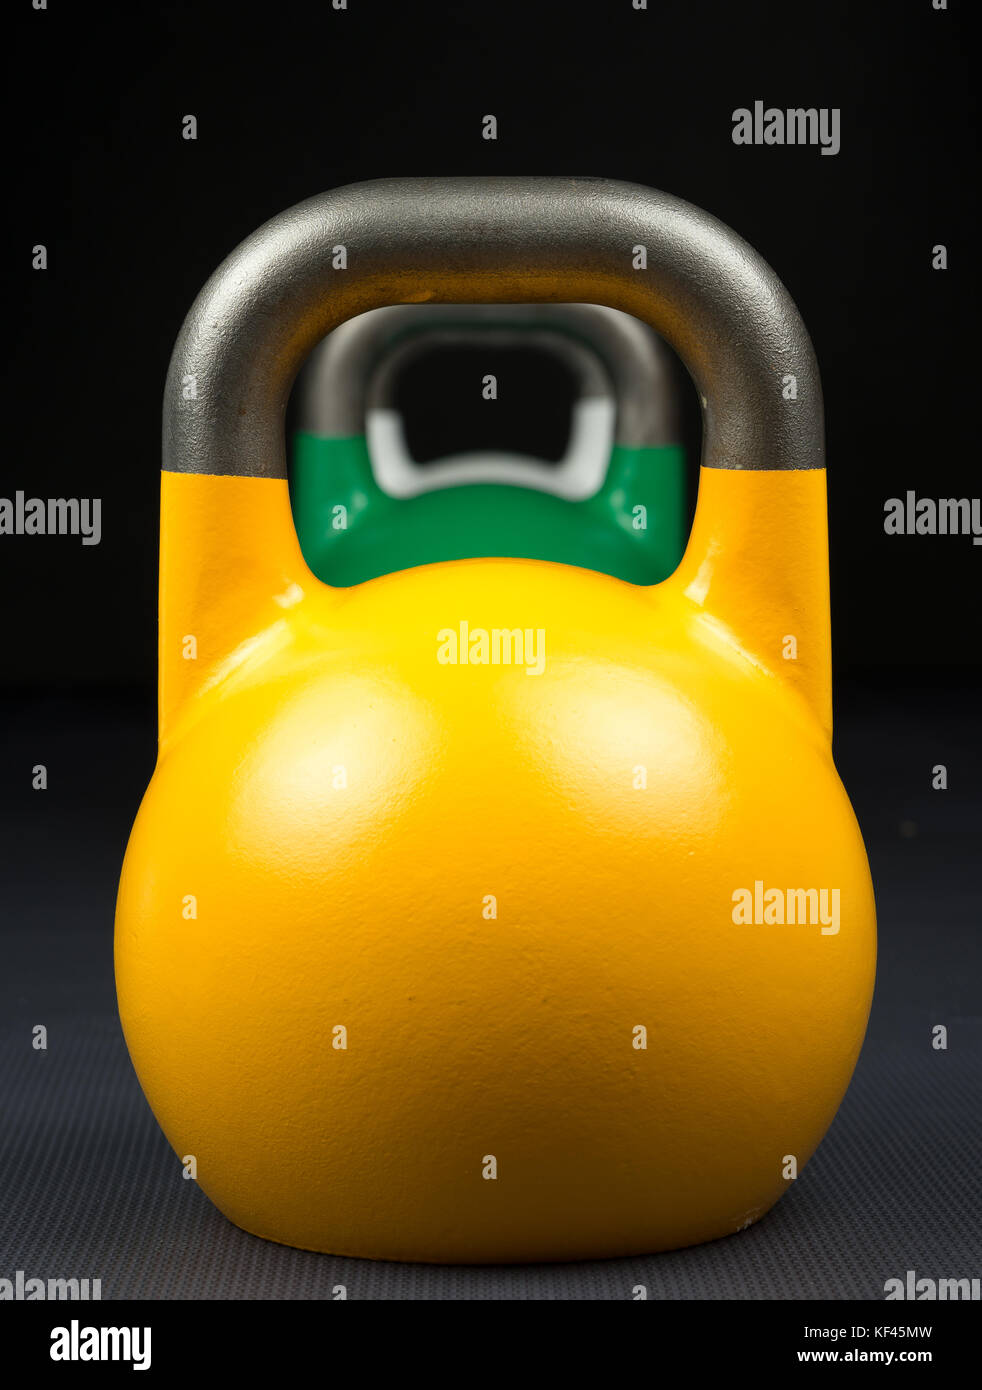 Yellow, green and white competition kettlebells lined up in a row on a weight training gym floor. - Stock Image